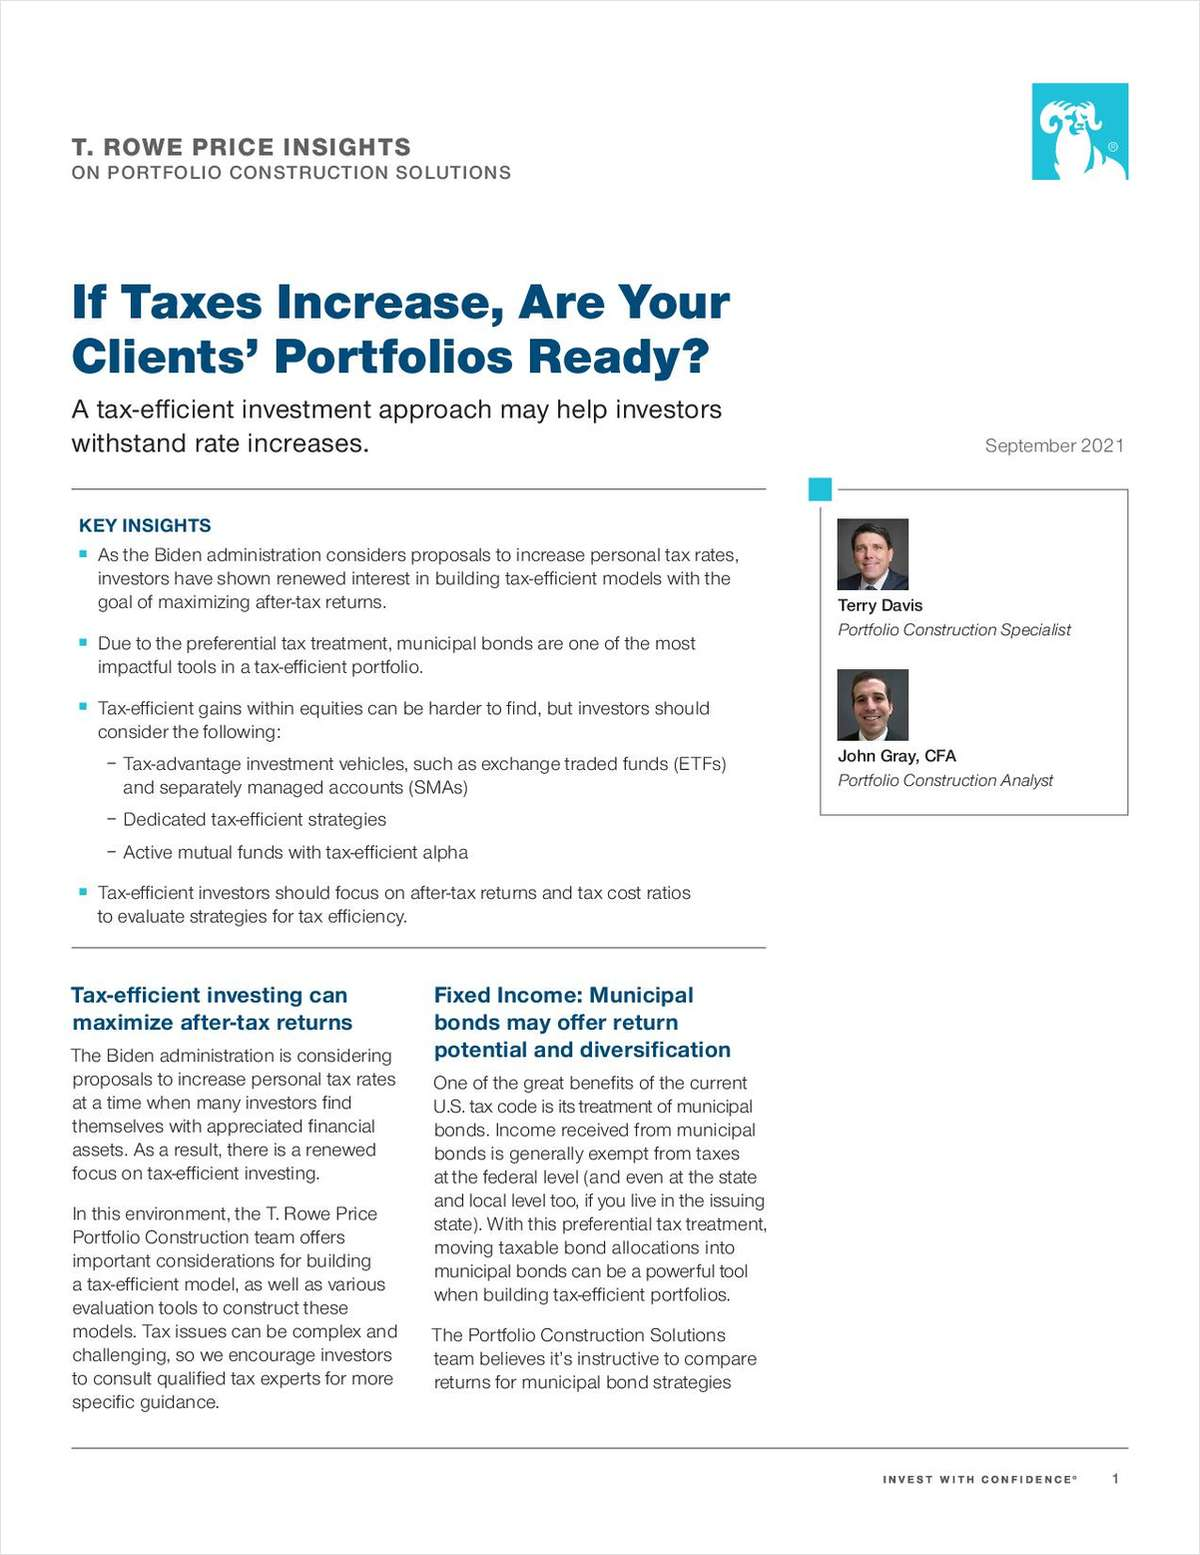 If Taxes Increase, Are Your Clients' Portfolios Ready?